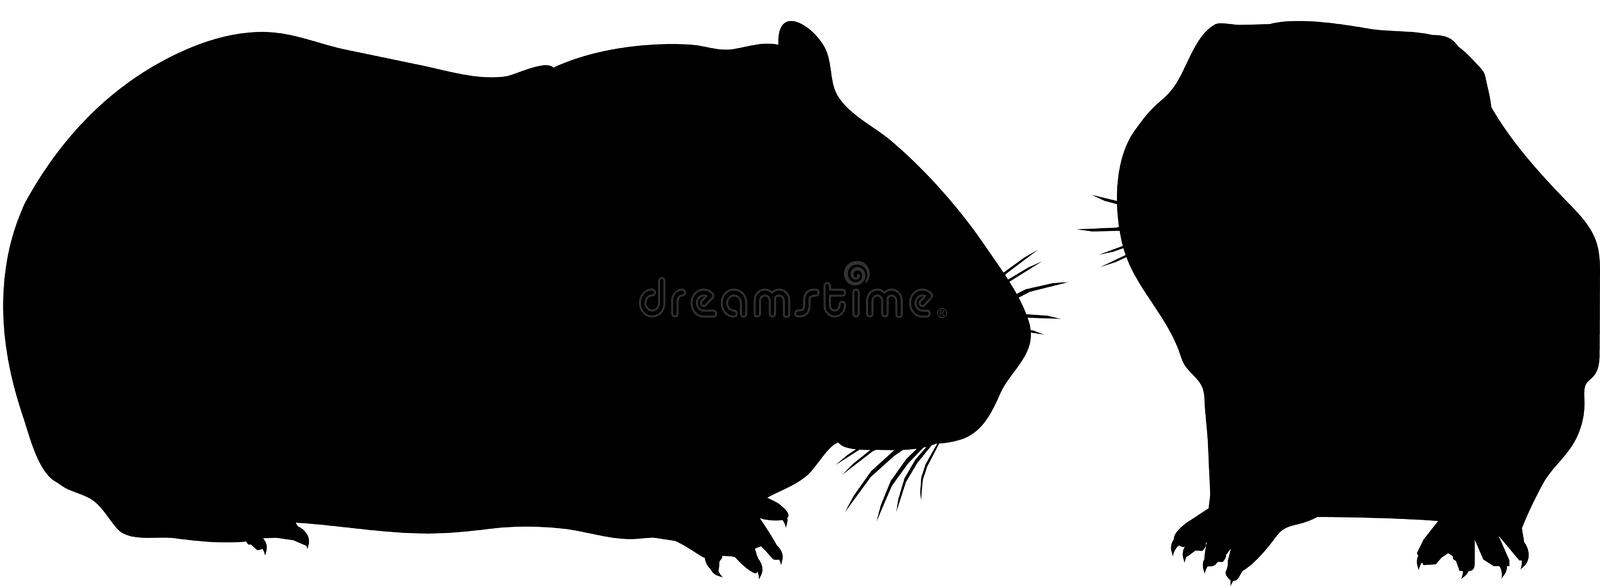 Guinea Pig Cavy Silhouette. Silhouette pair of Guinea Pigs. Domesticated South American Cavy. Belonging to the rodent family Widespread family pets vector illustration